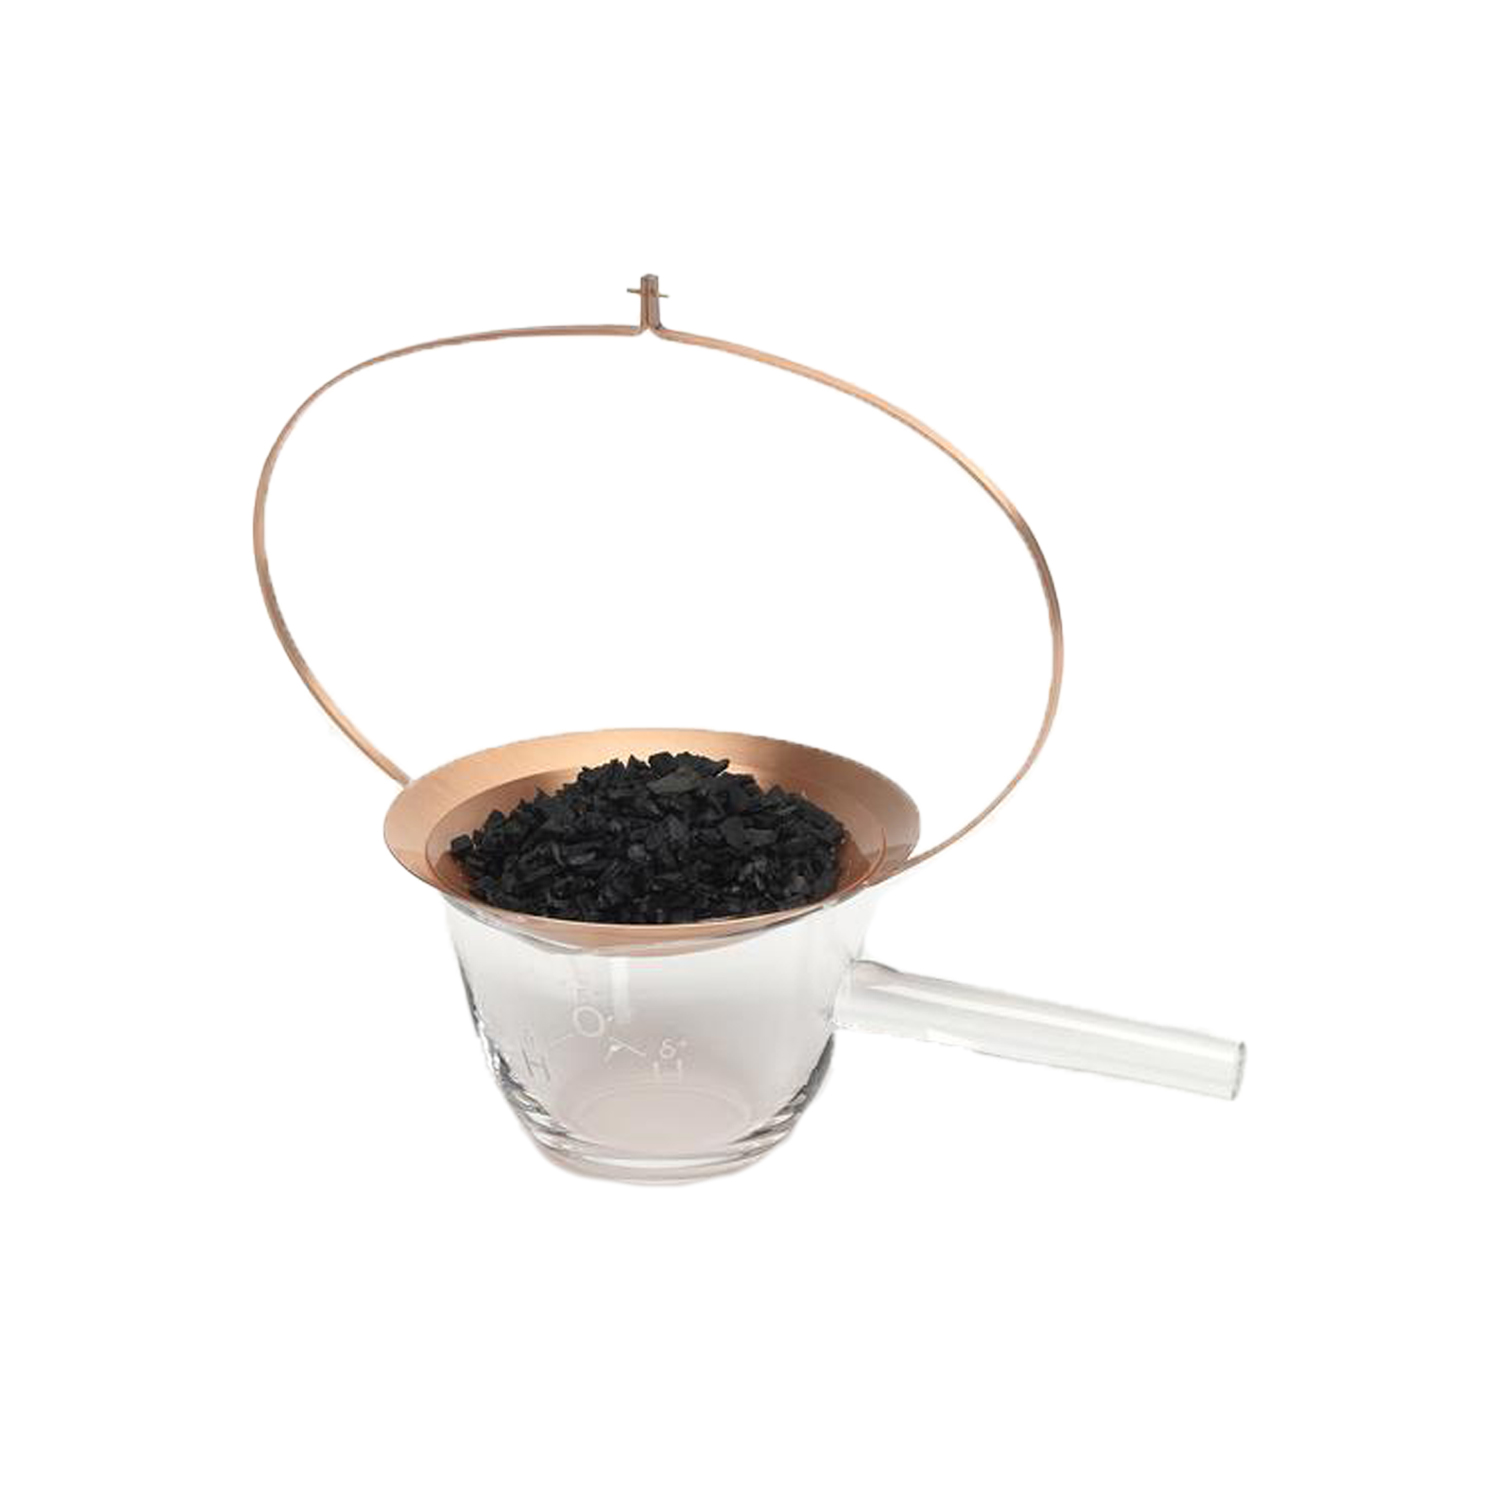 Still Medium Vessel Filter Charcoal Cup - What are the true luxury goods of today? For us, it's not glitter, gold, or heavy cut crystal vases. People of today need carefully designed and well-crafted objects. Pure drinking water is a treasure and this drinking set – STILL – reminds us to cherish and enjoy our world's most important resource. Formafantasma didn't come back with a single piece, but instead with a series that tells an evocative story. | Matter of Stuff